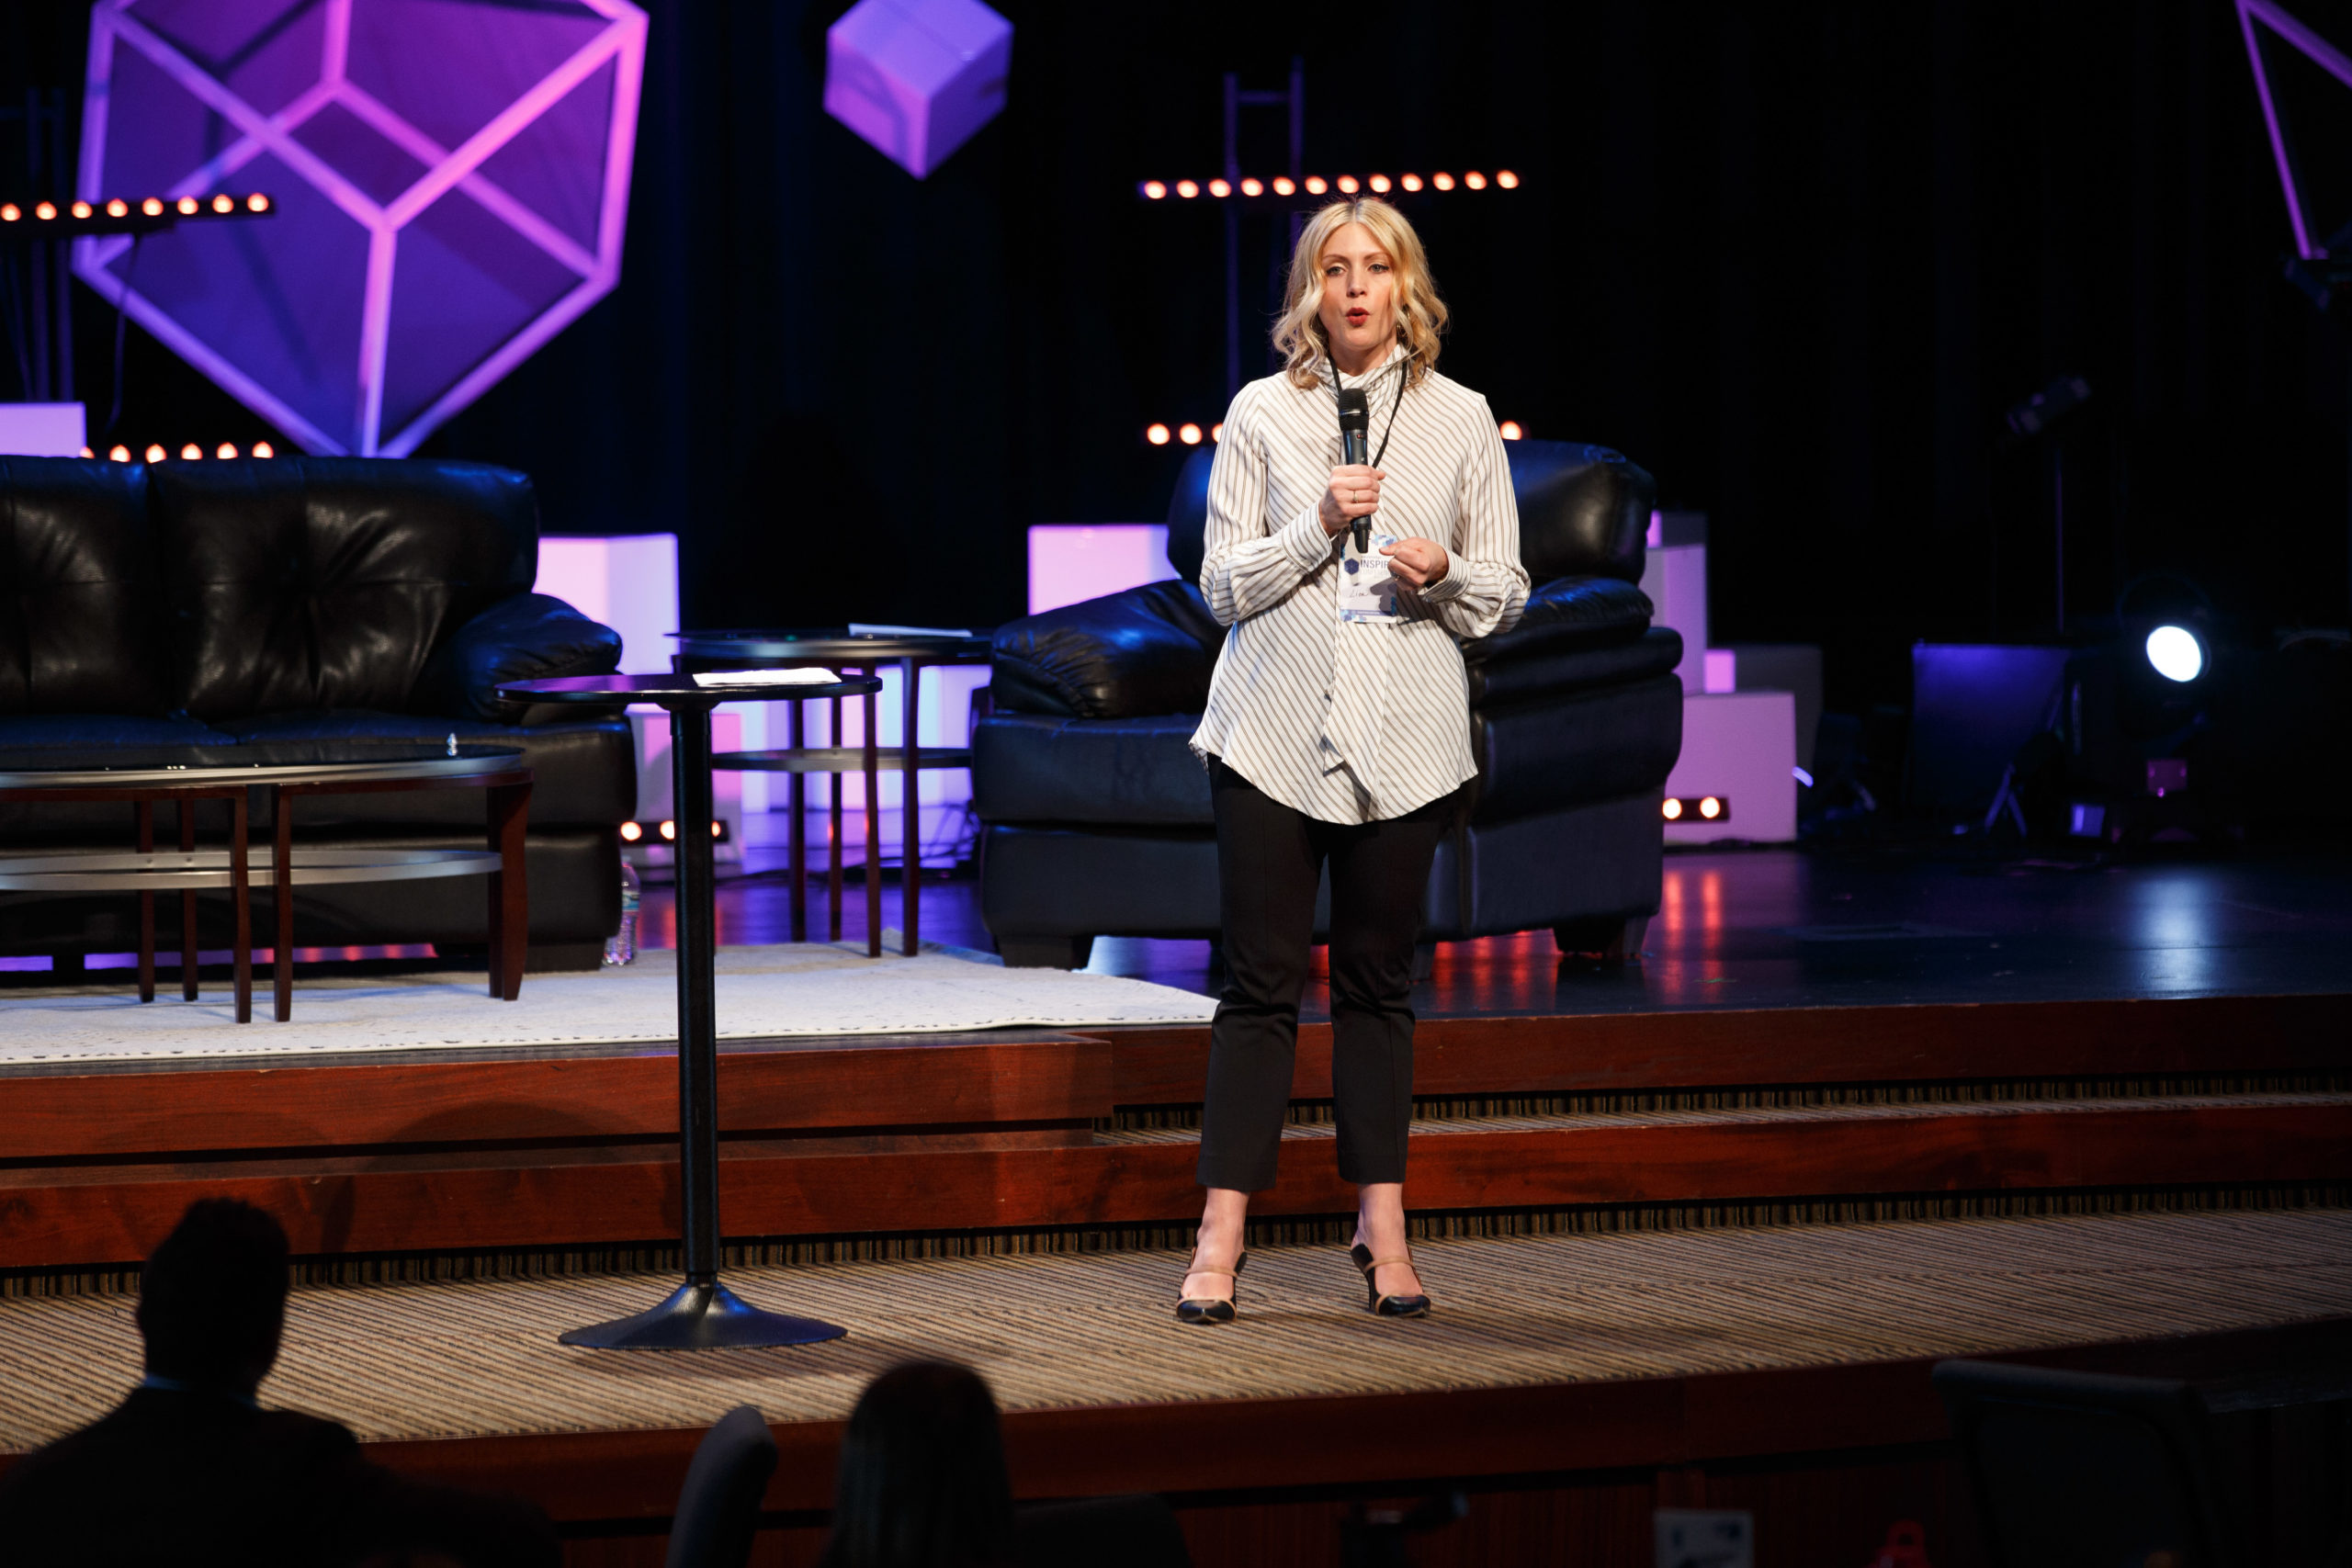 Inspire Conference 2019 One Day 047